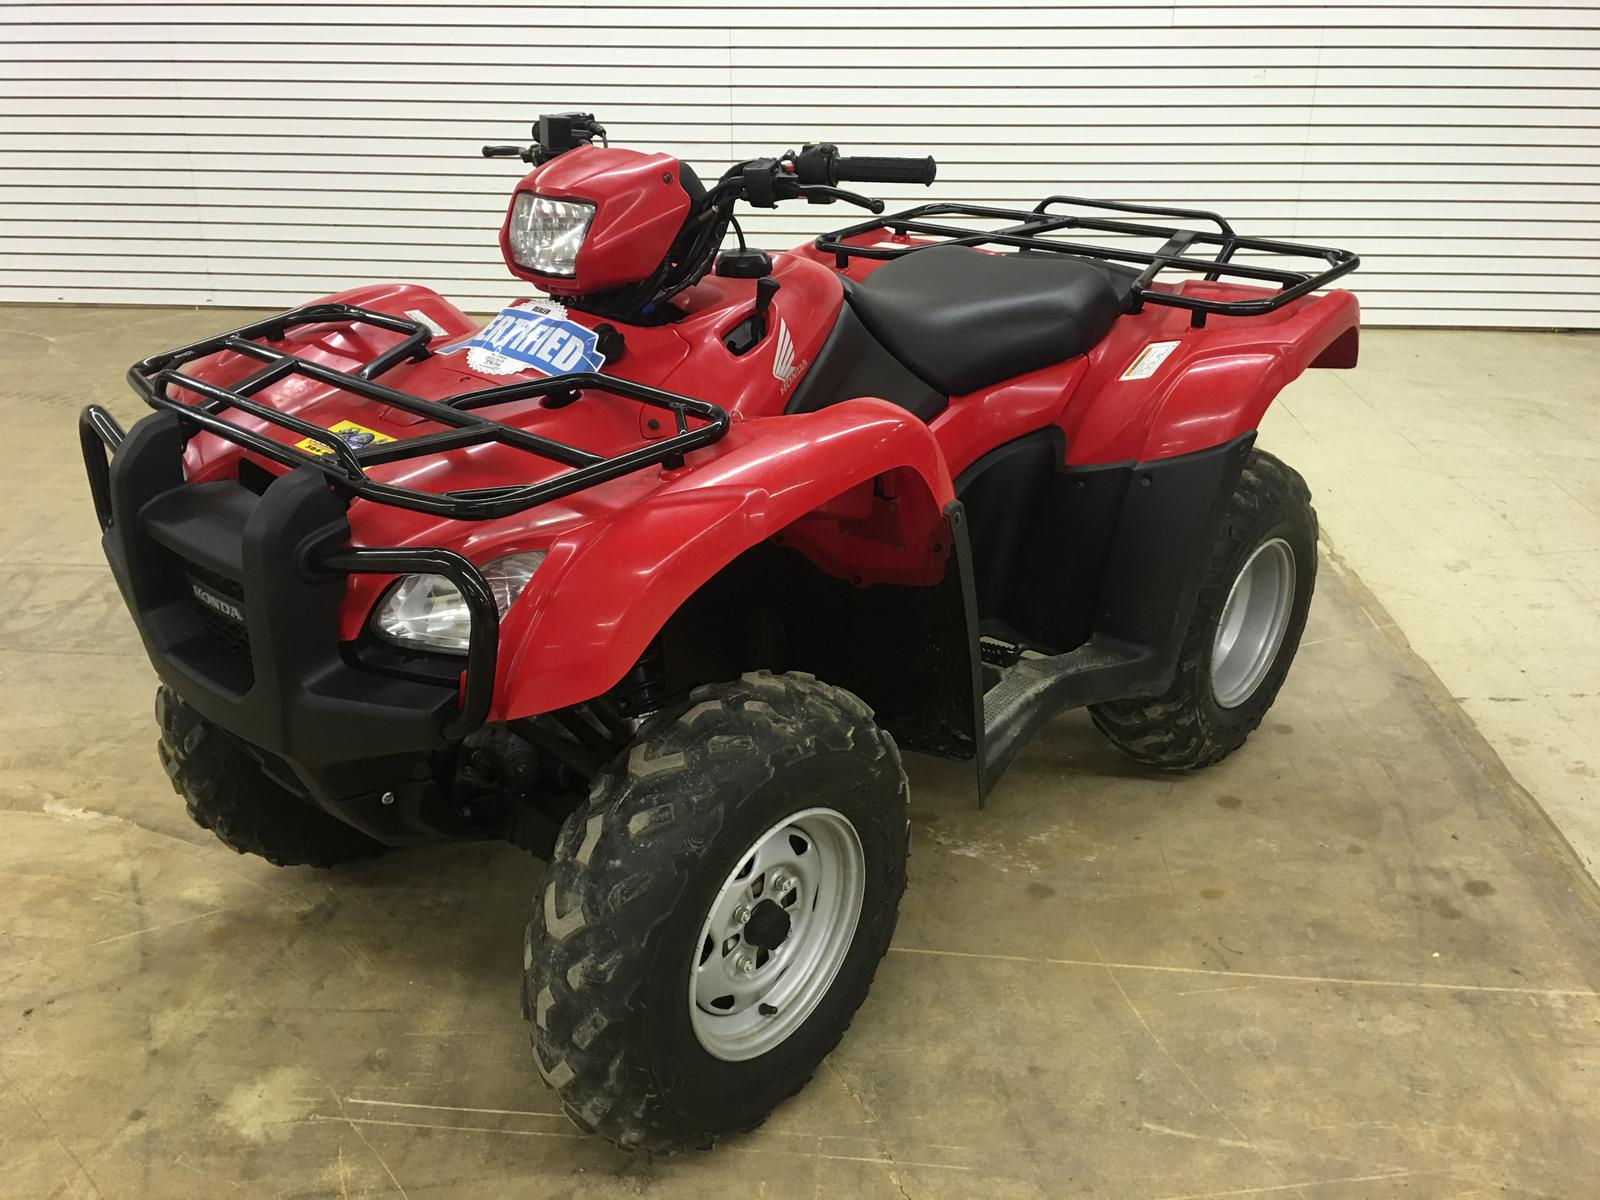 lake arctic efi used cat in search four pin com atvs atv atvtrader wheeler pinterest wales